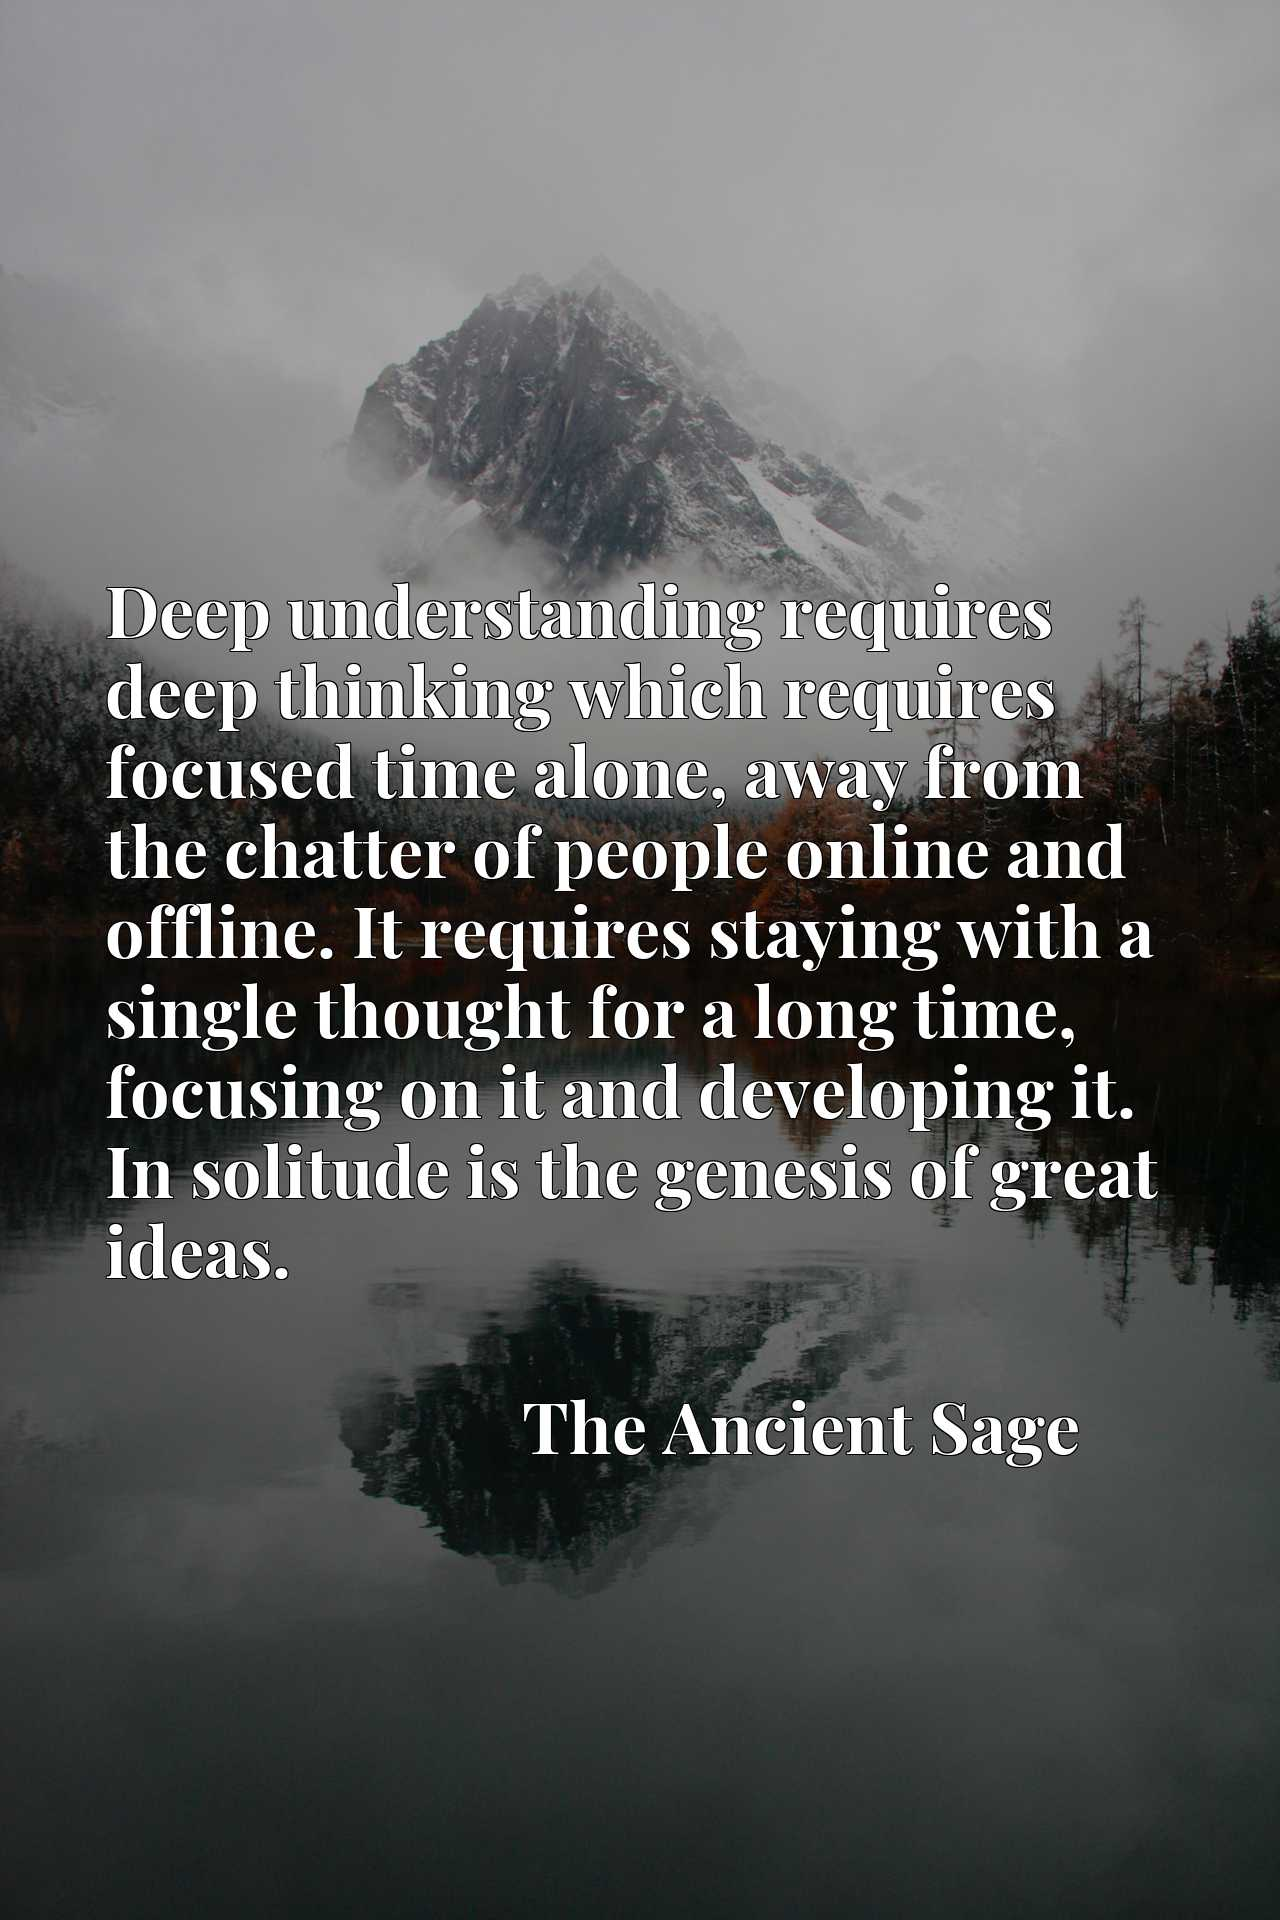 Deep understanding requires deep thinking which requires focused time alone, away from the chatter of people online and offline. It requires staying with a single thought for a long time, focusing on it and developing it. In solitude is the genesis of great ideas.